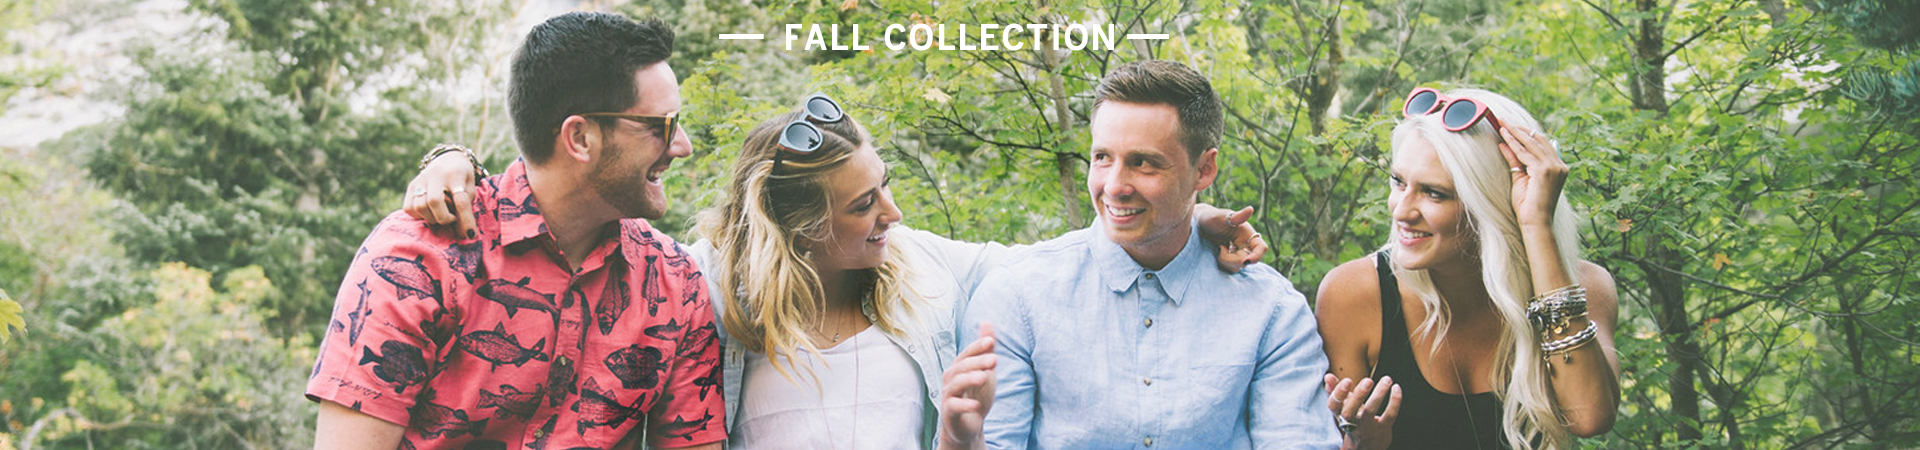 Tmbr. Fall Collection